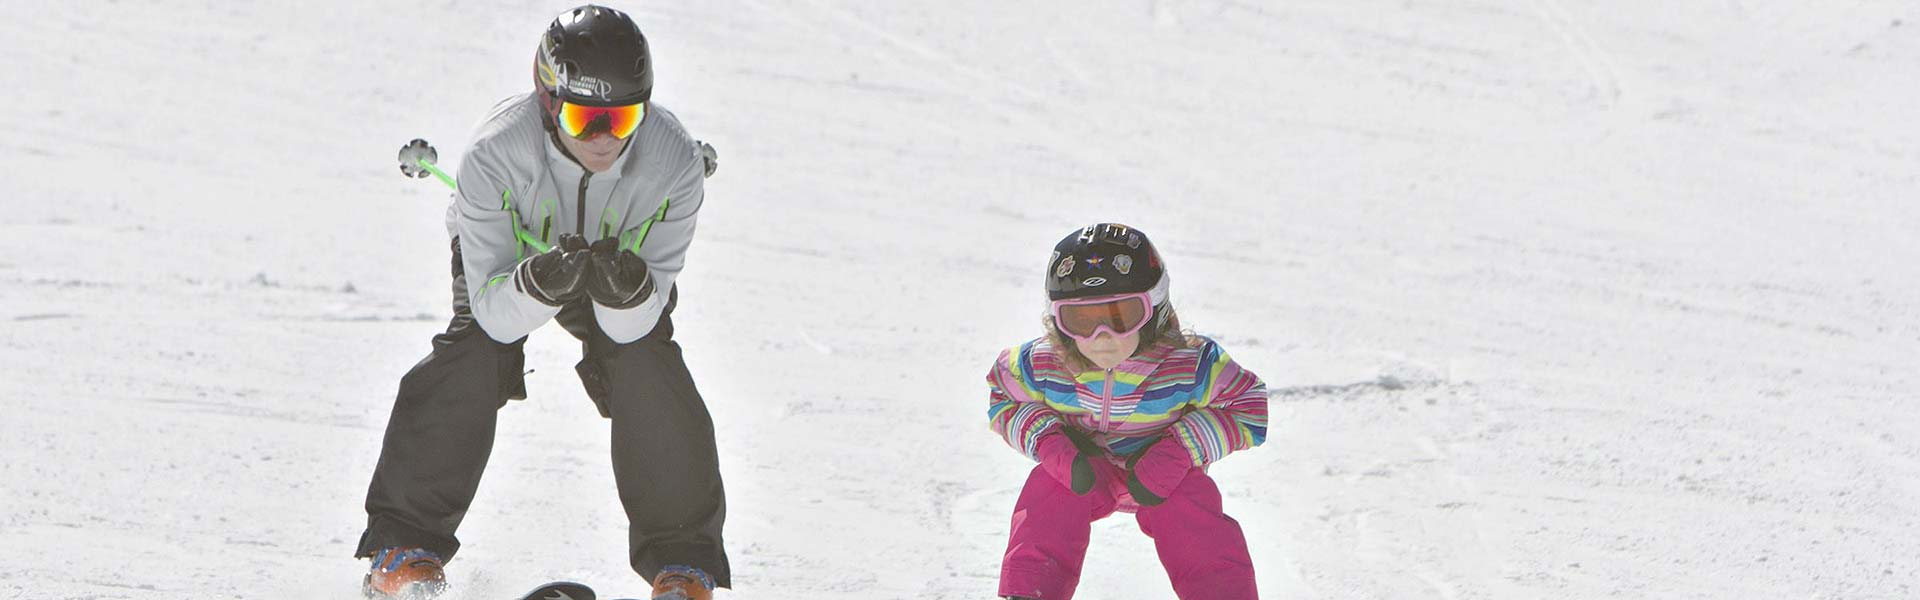 Save 20% on your reservation for ski and snowboard equipment in Northern Michigan & Park City Utah!